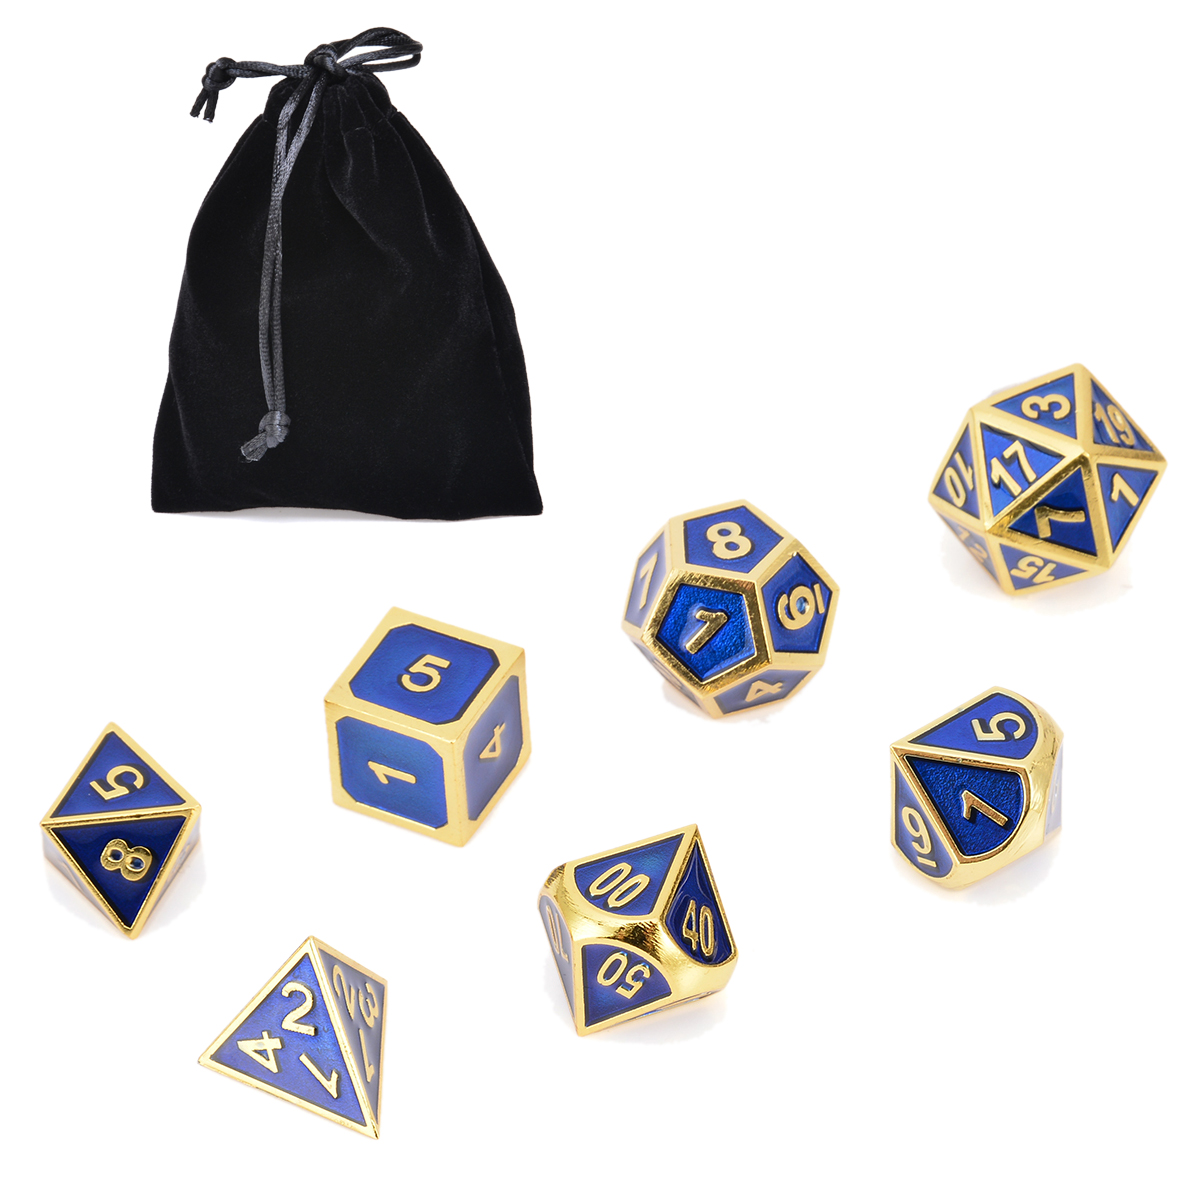 Hot Sale 7x Antique Metal Polyhedral Dice Dungeons Dragons Role Playing Party Bar Game With Bag